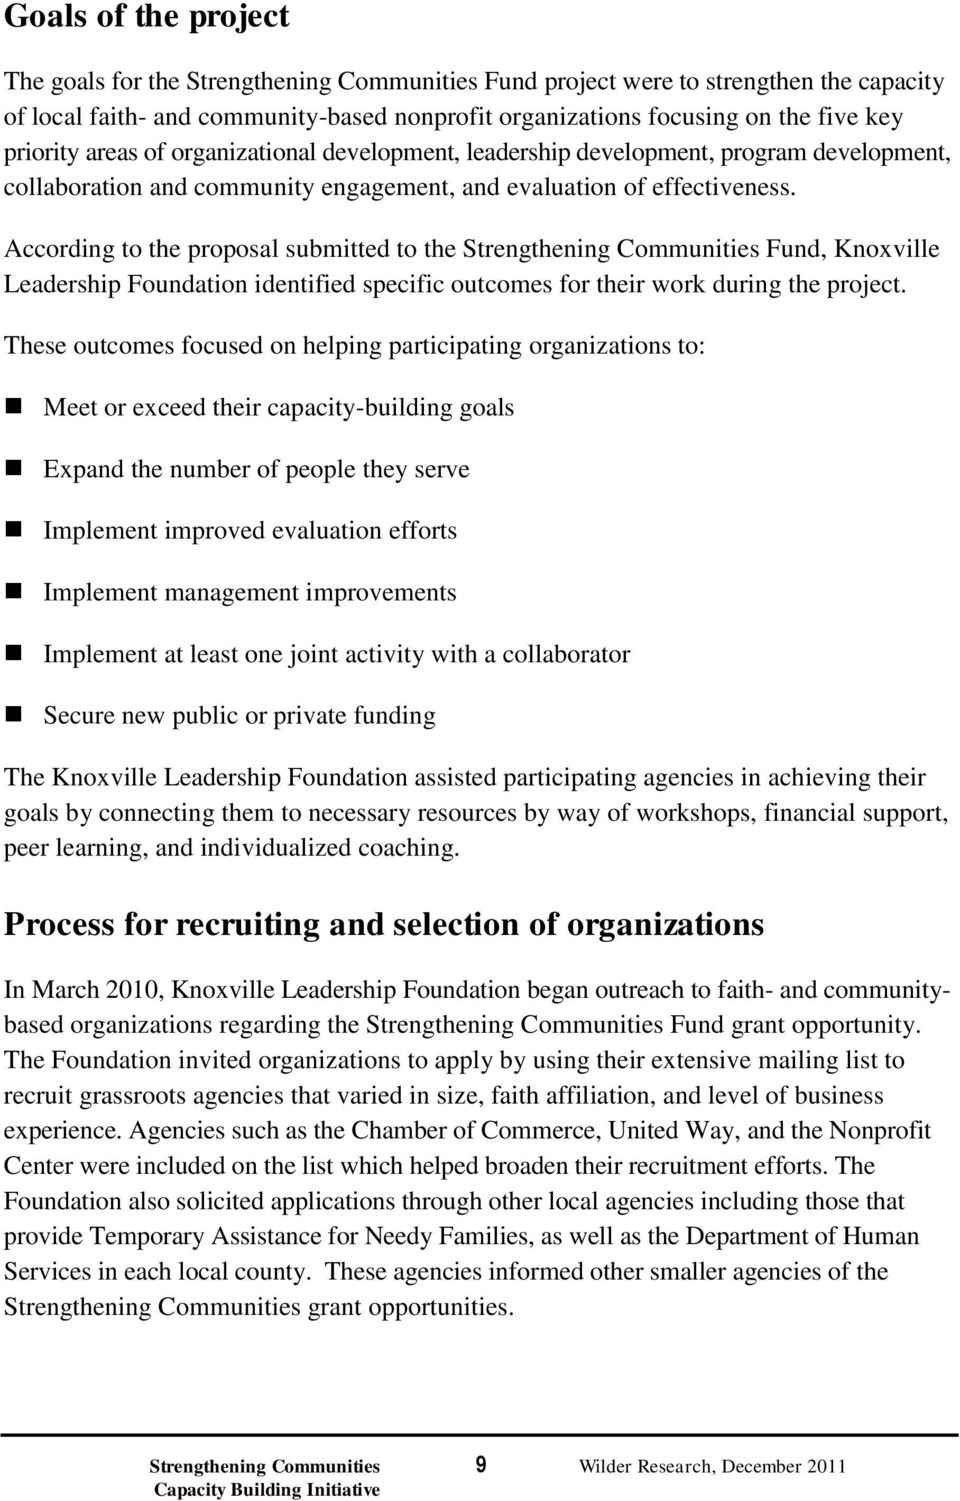 According to the proposal submitted to the Strengthening Communities Fund, Knoxville Leadership Foundation identified specific outcomes for their work during the project.